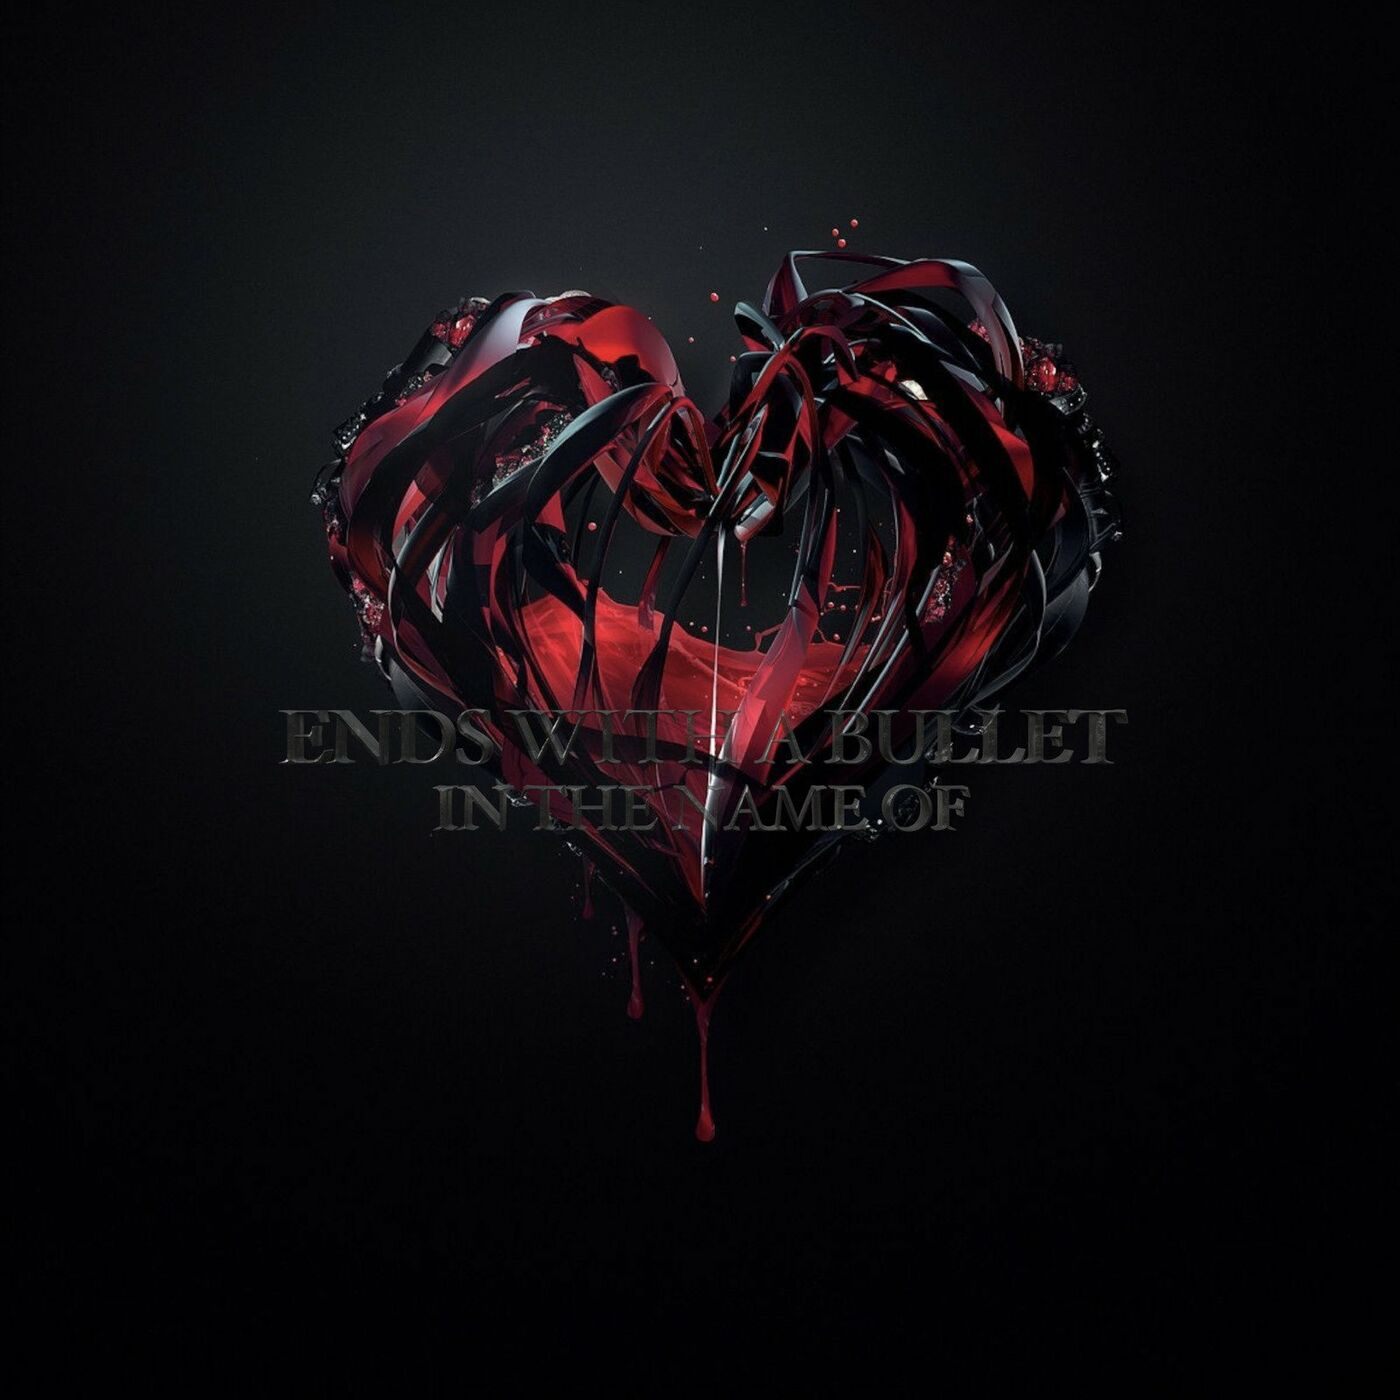 Ends With A Bullet - In the Name Of [single] (2021)